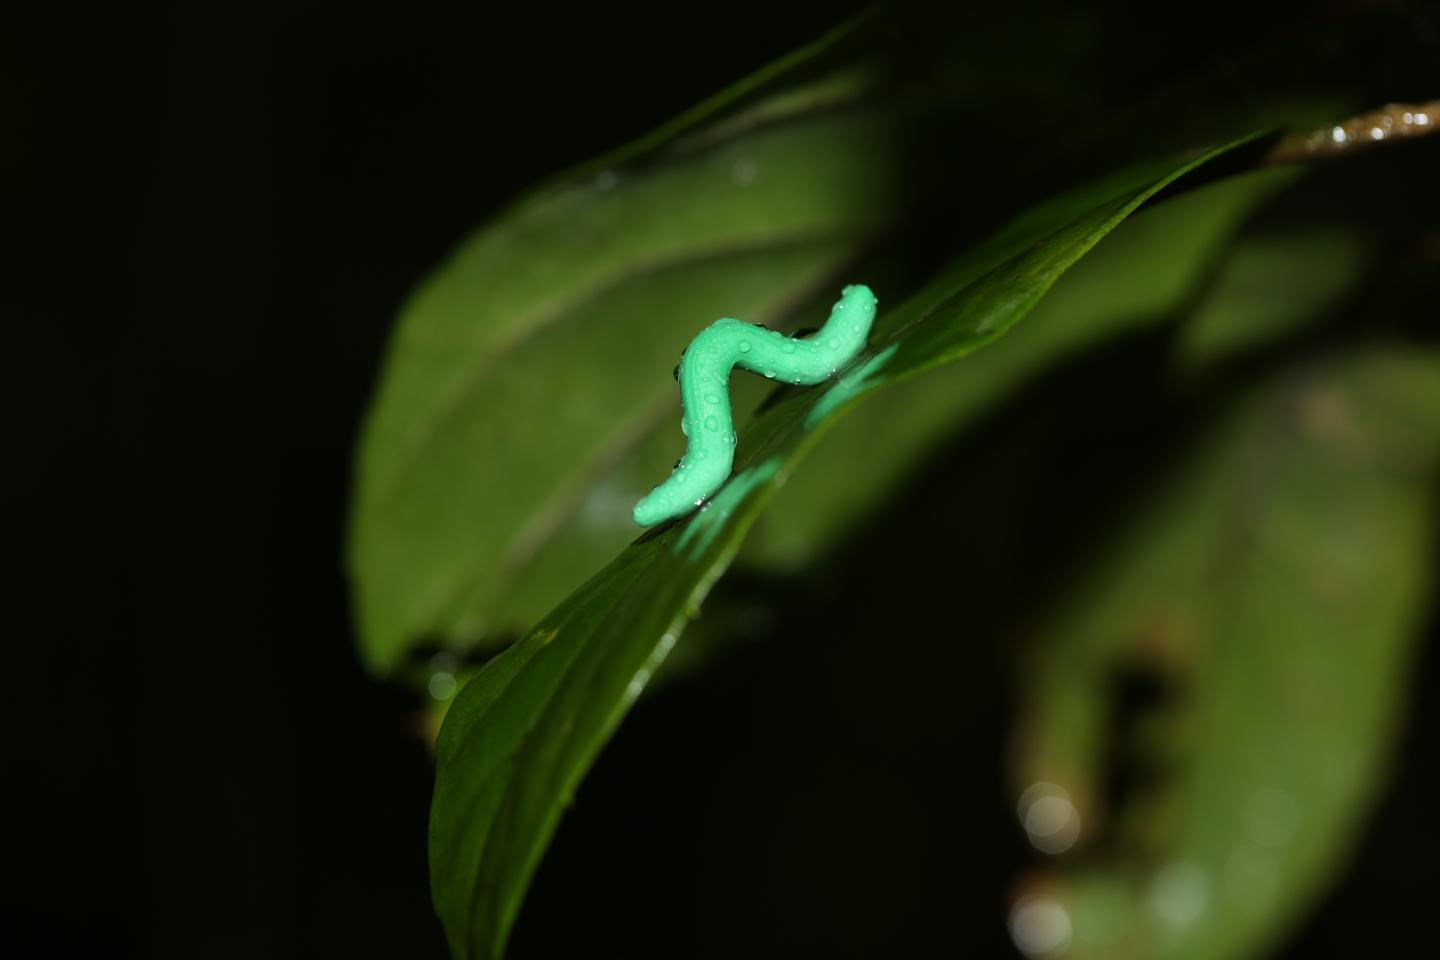 A Dummy Caterpillar used at a Site in Tai Po Kau, Hong Kong